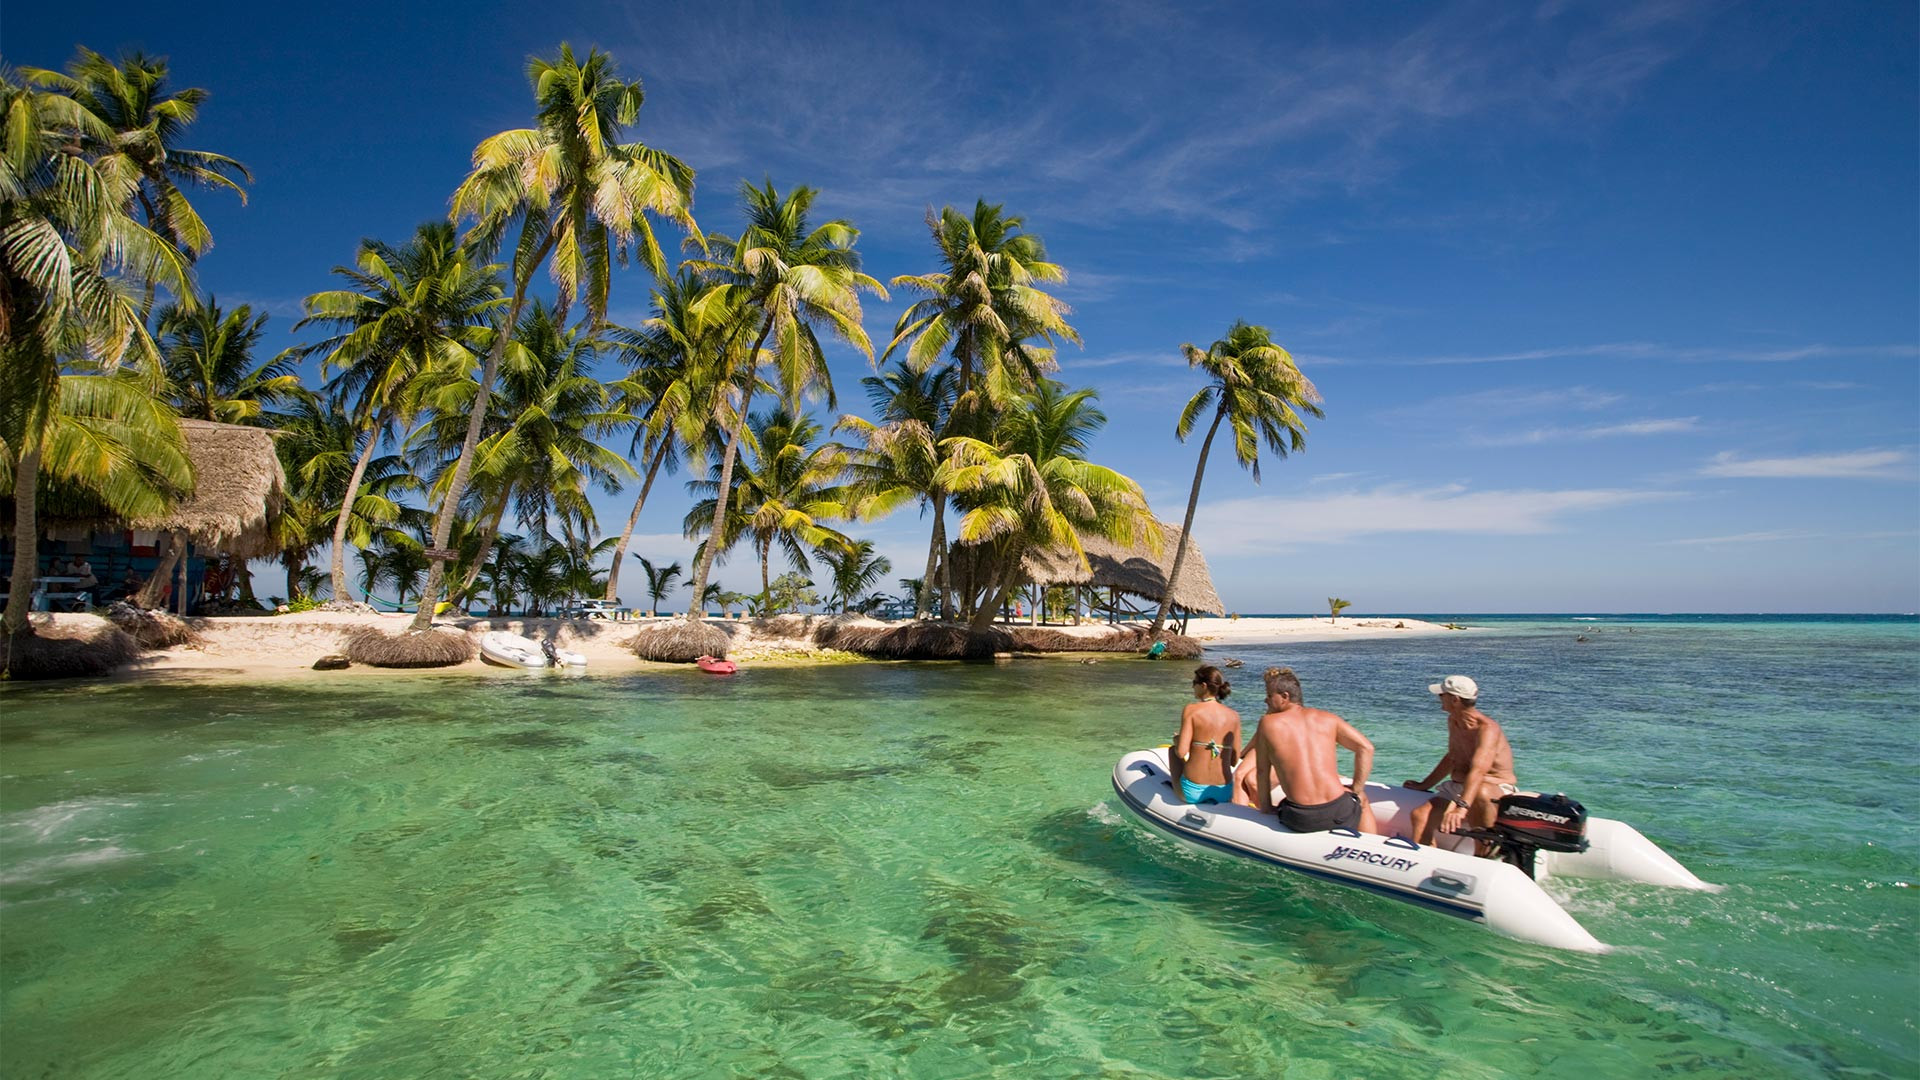 Belize's pristine white beaches